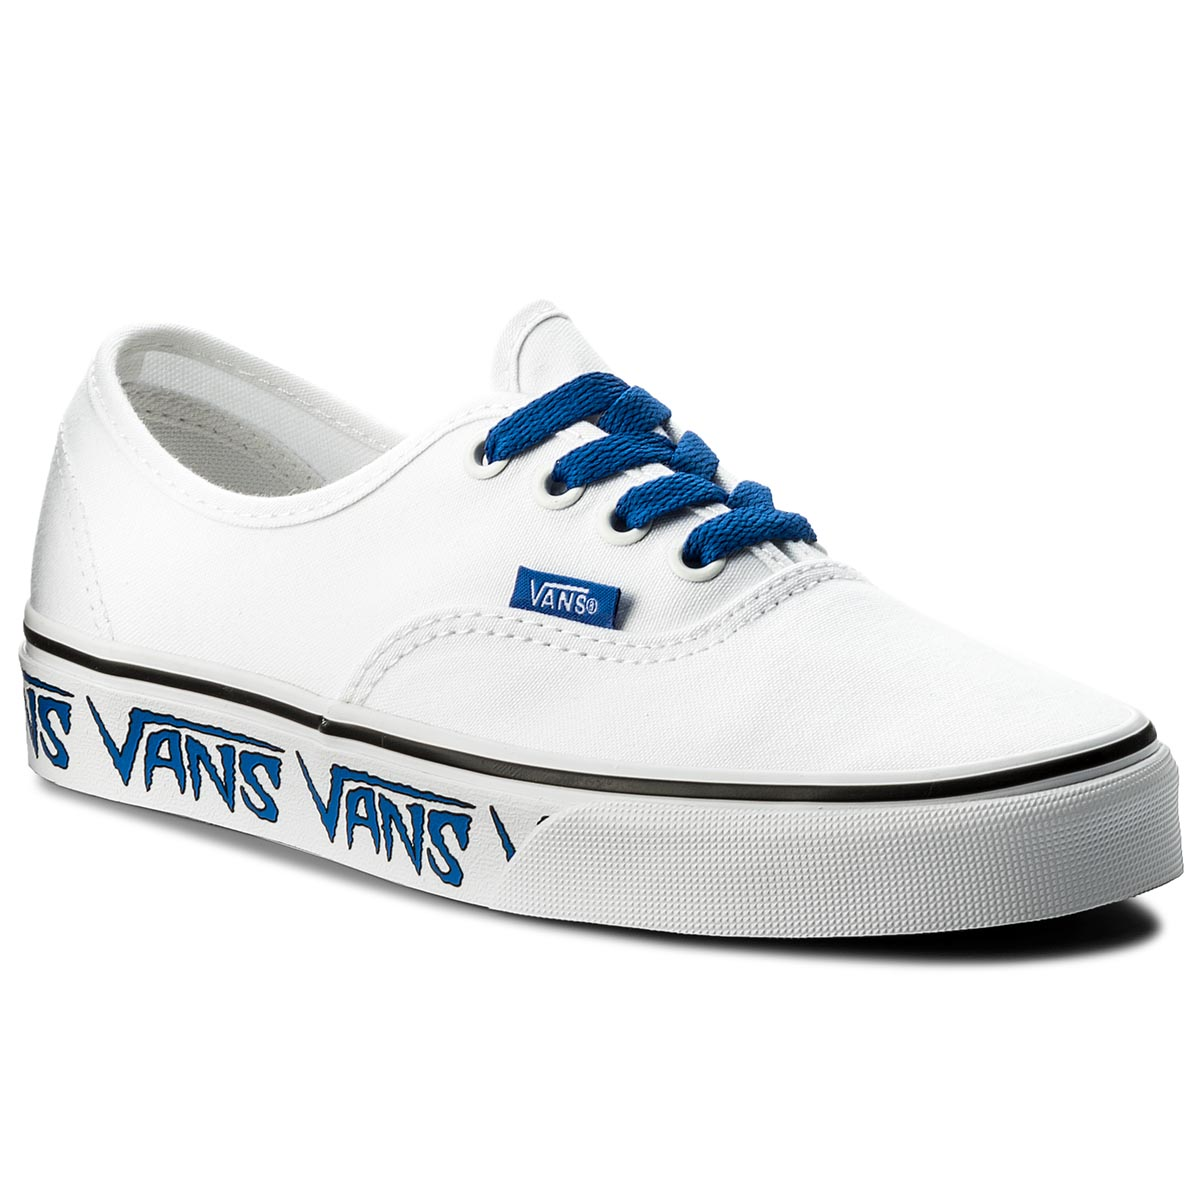 Teniși VANS - Authentic VN0A38EMQ9M (Sketch Sidewall) True Wh